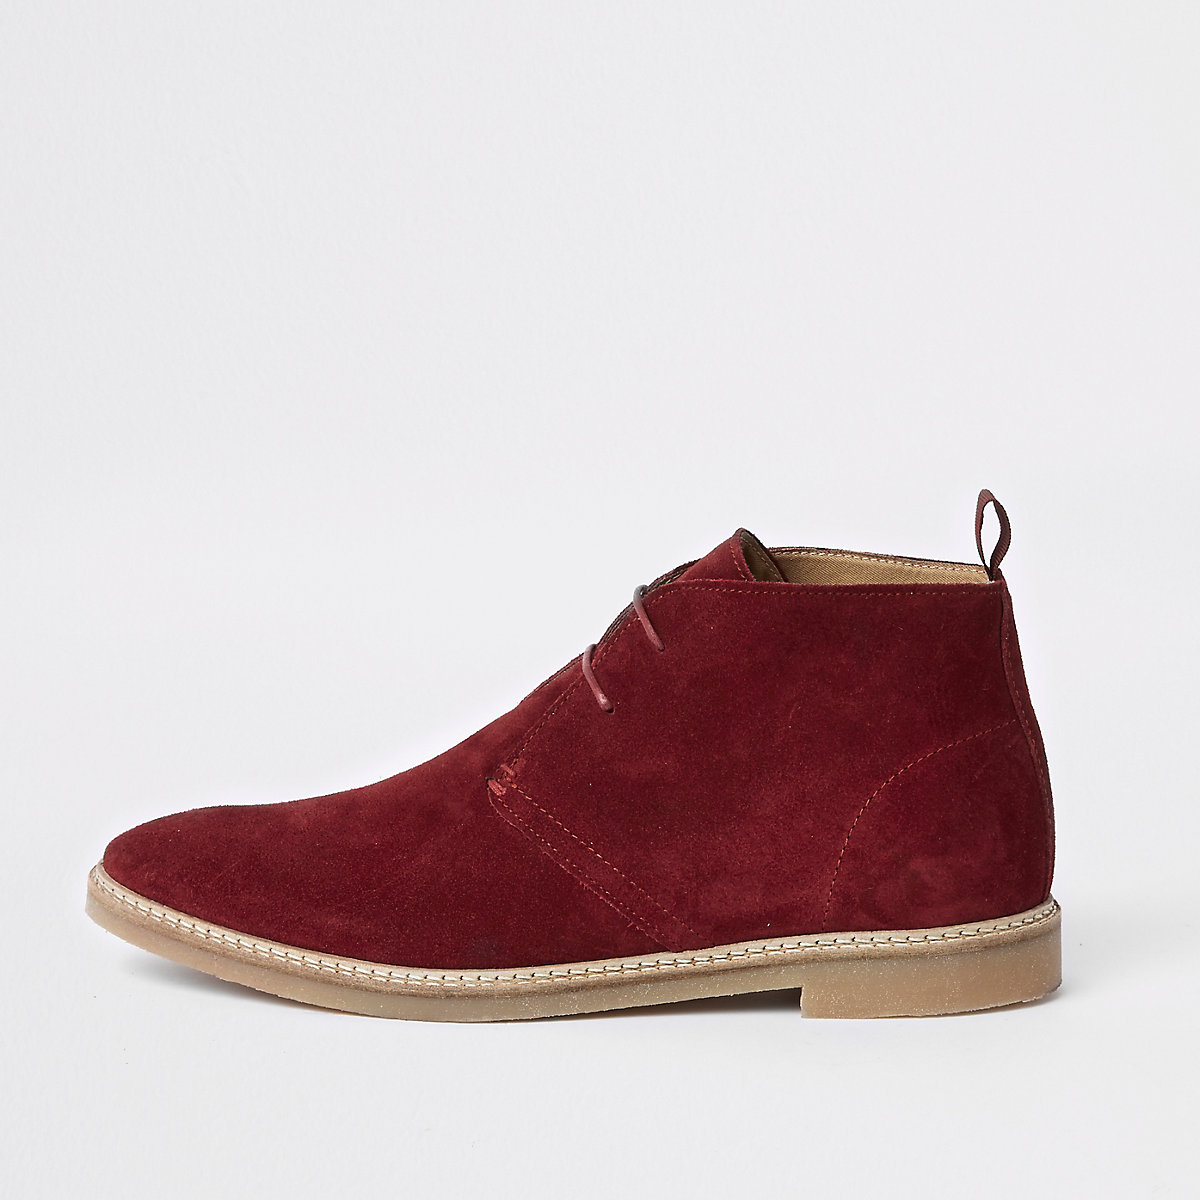 Red suede eyelet desert boots